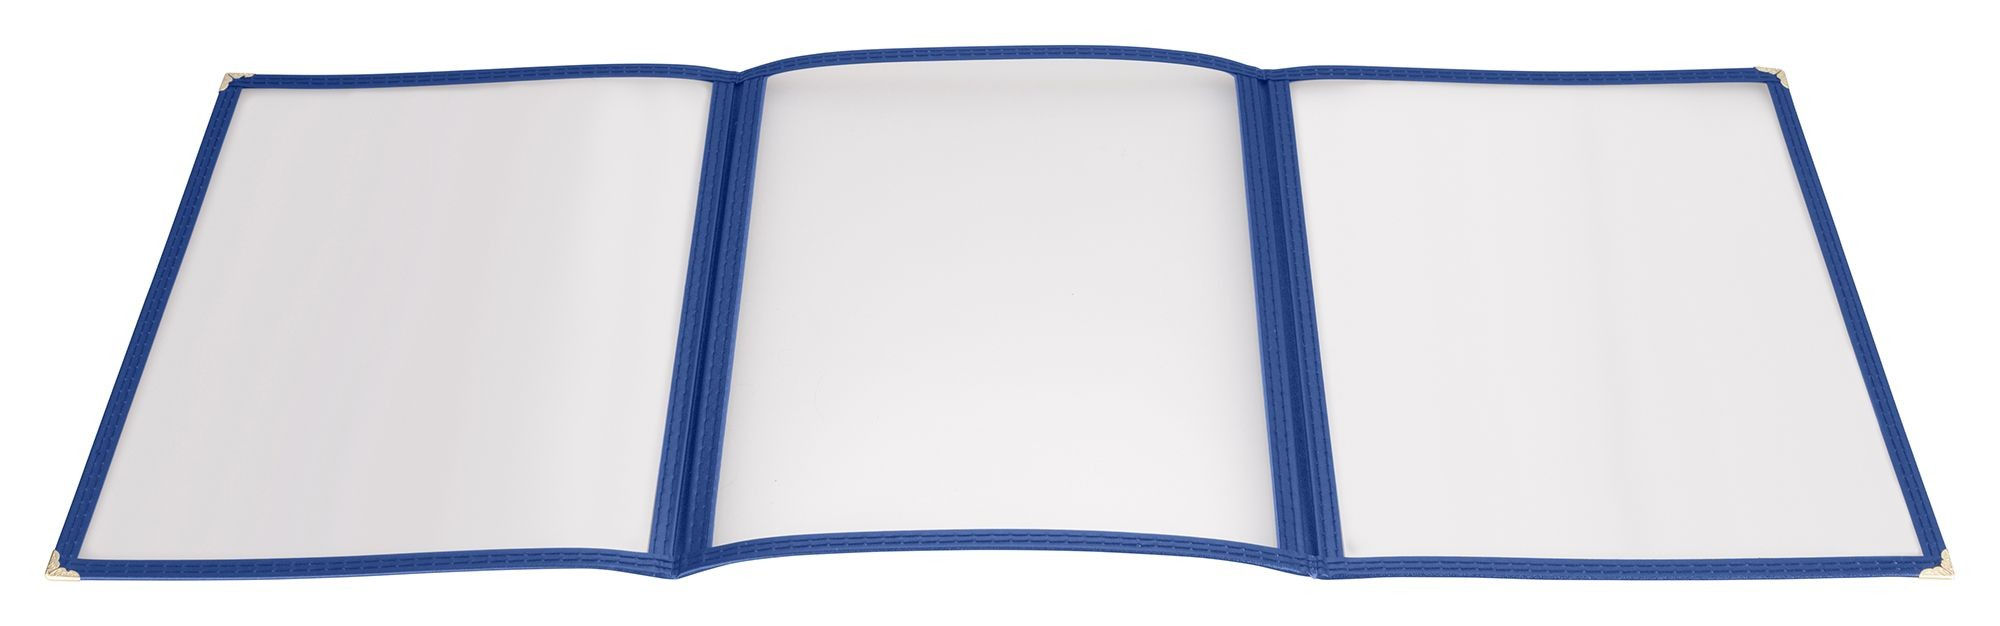 "Winco PMCT-9B Blue Triple Fold Menu Cover 9-1/2"" x 12"""